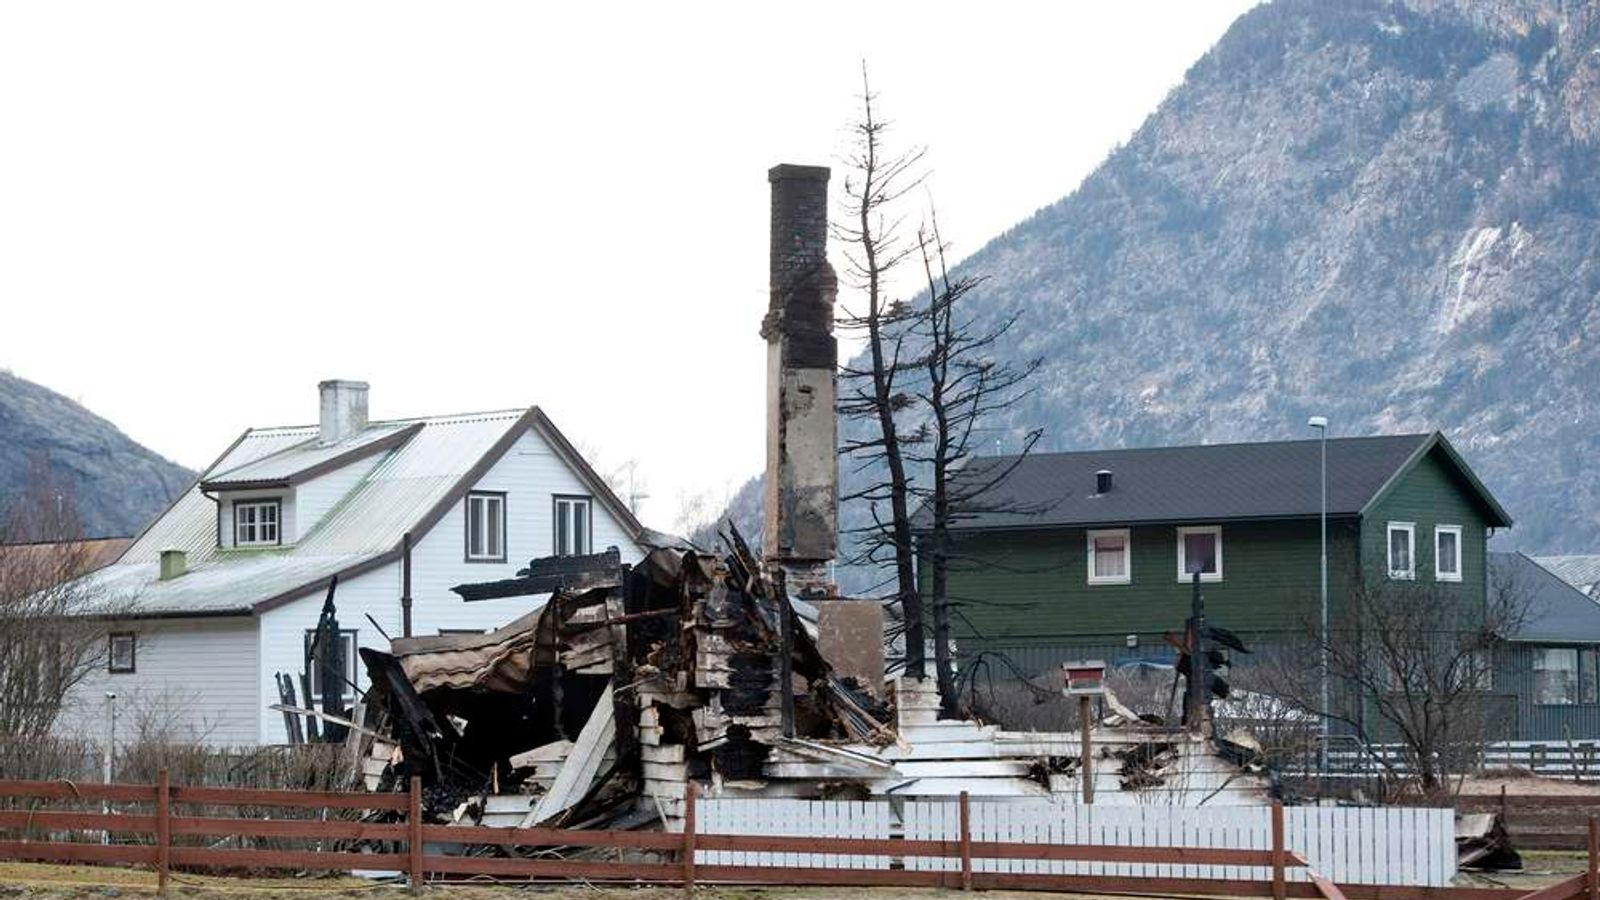 The burnt out remains of a building is pictured after a fire in Laerdal, western Norway